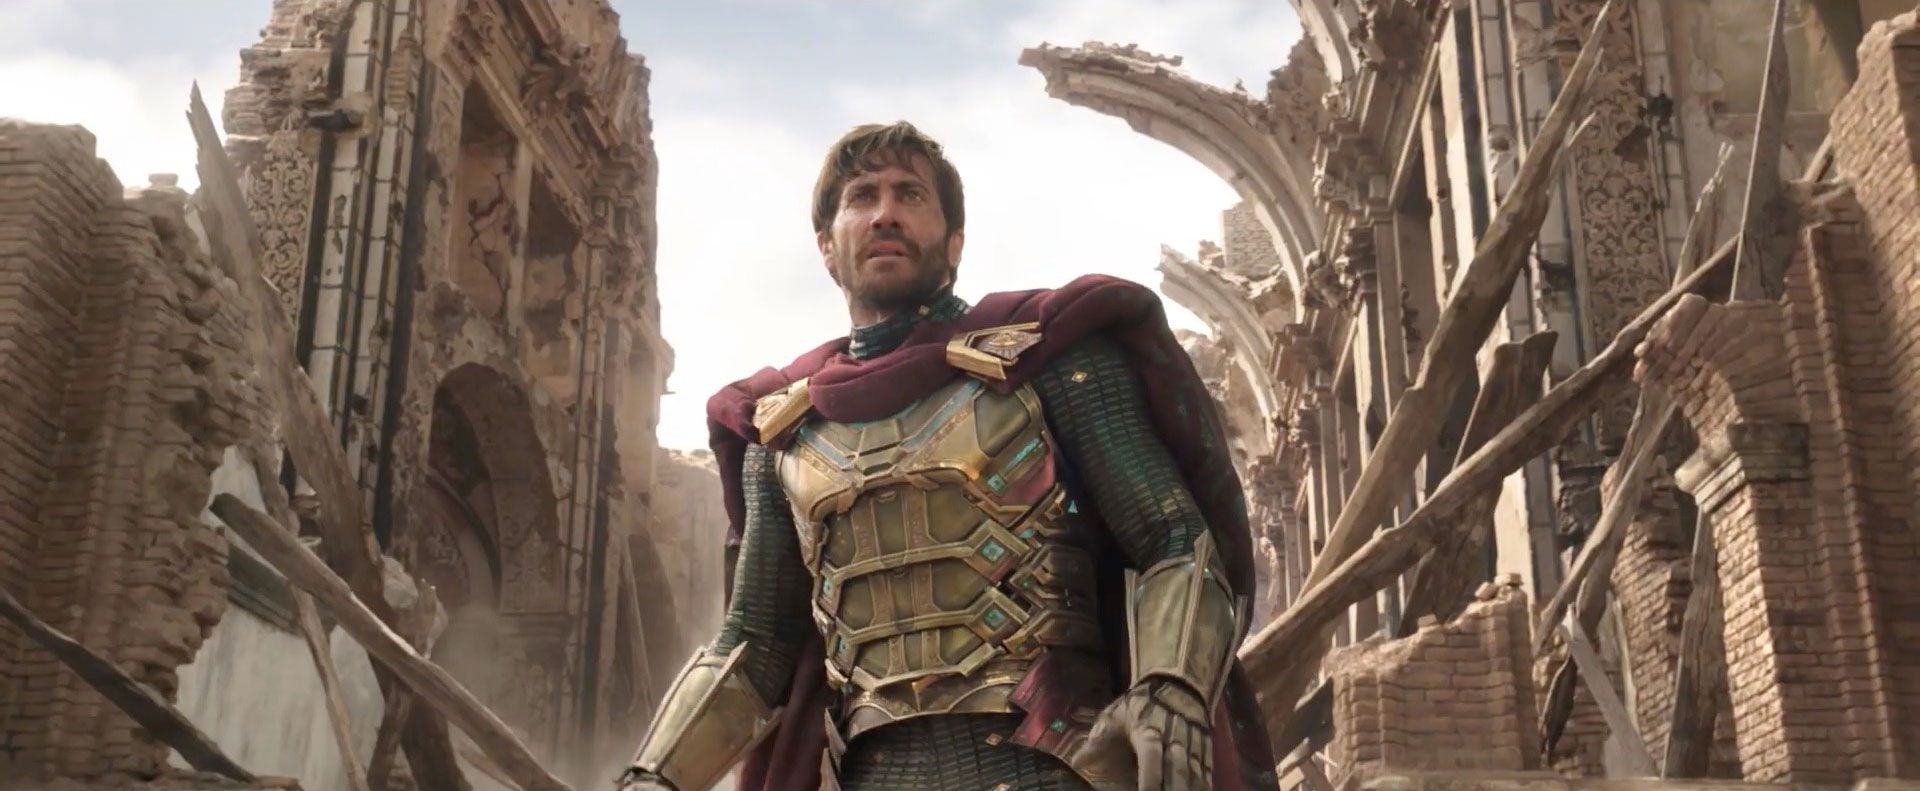 Jake Gyllenhaal as Mysterio in Spider-Man: Far From Home.